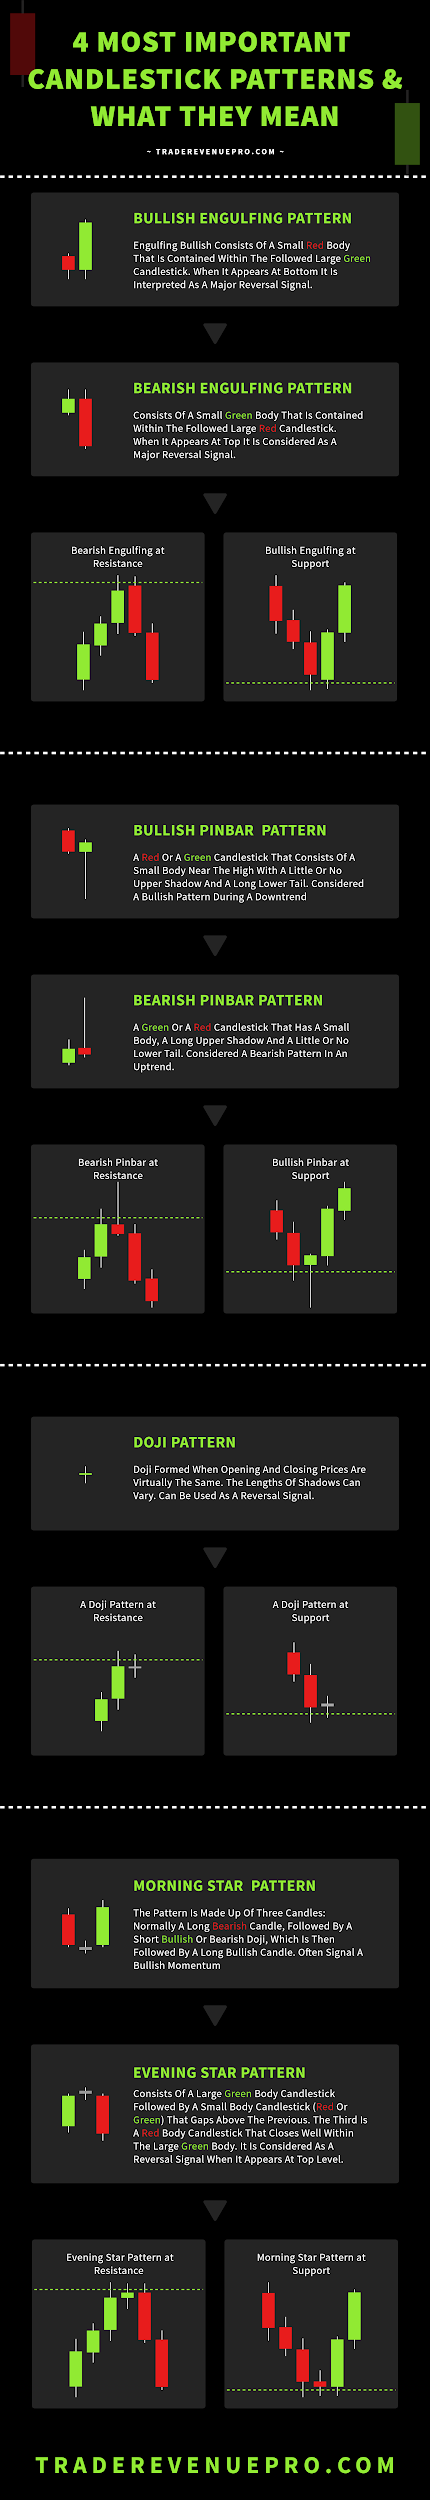 candlestick pattern infographic